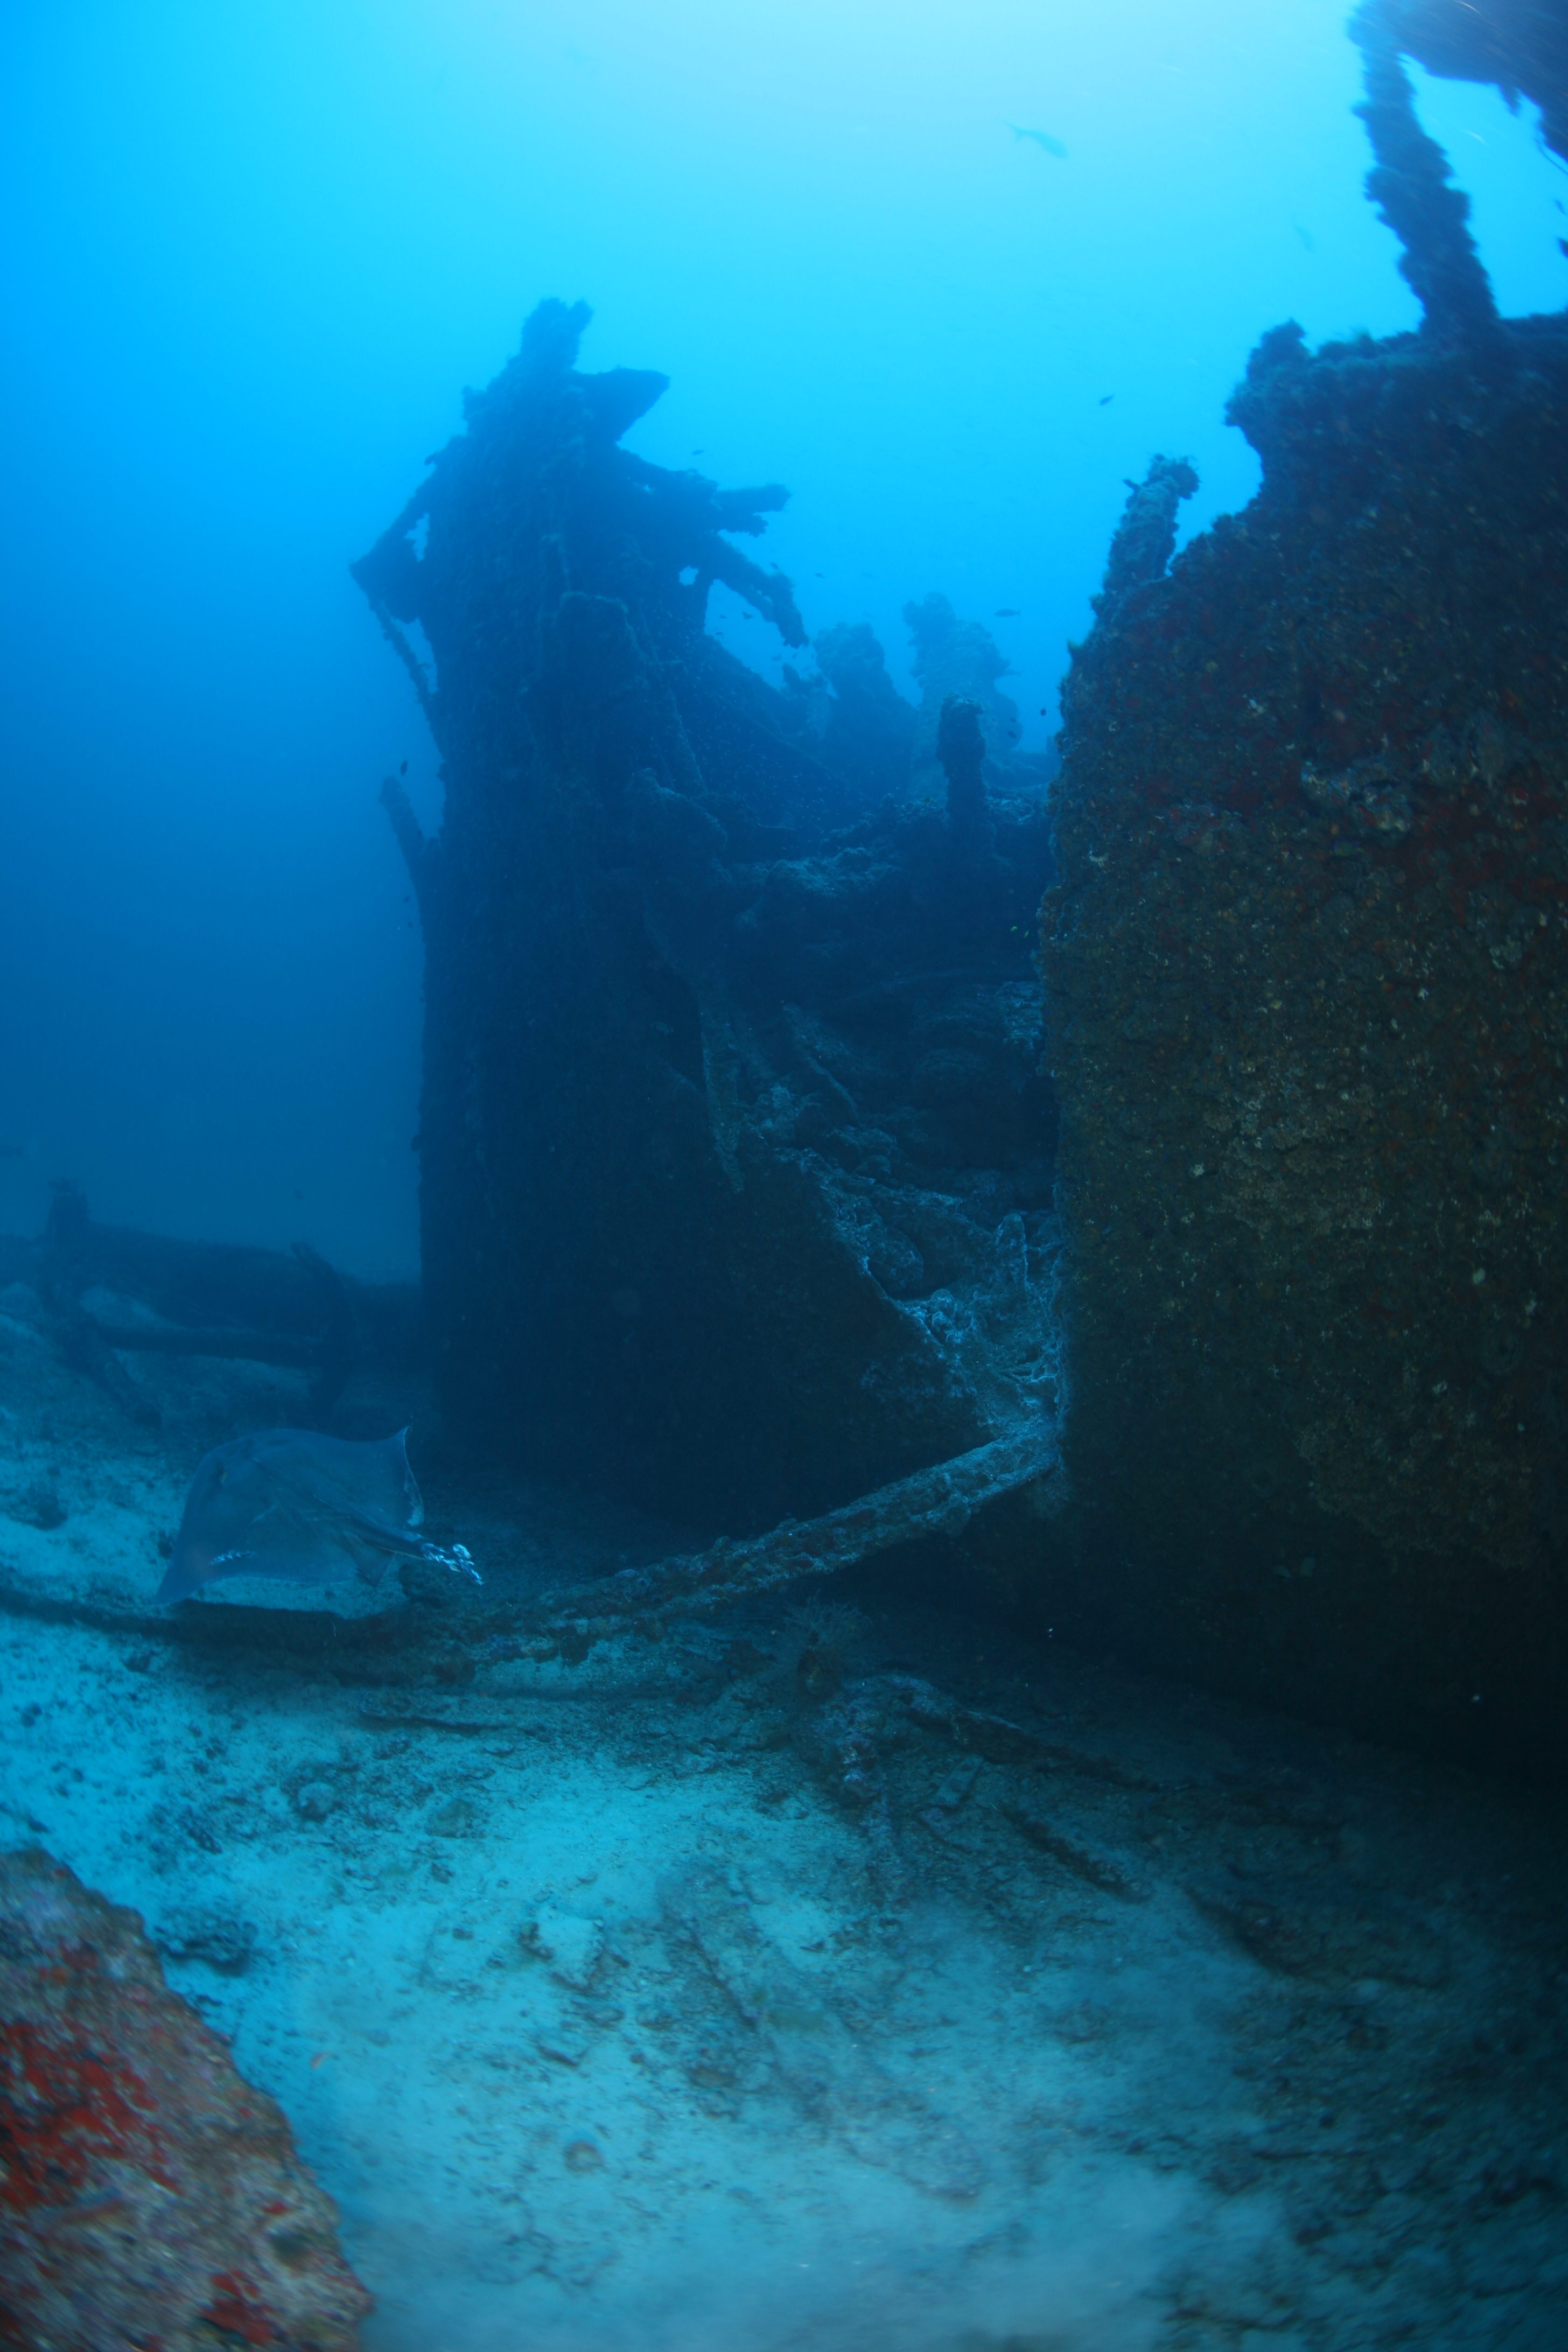 Araby Maid the point of collision that sank the ship